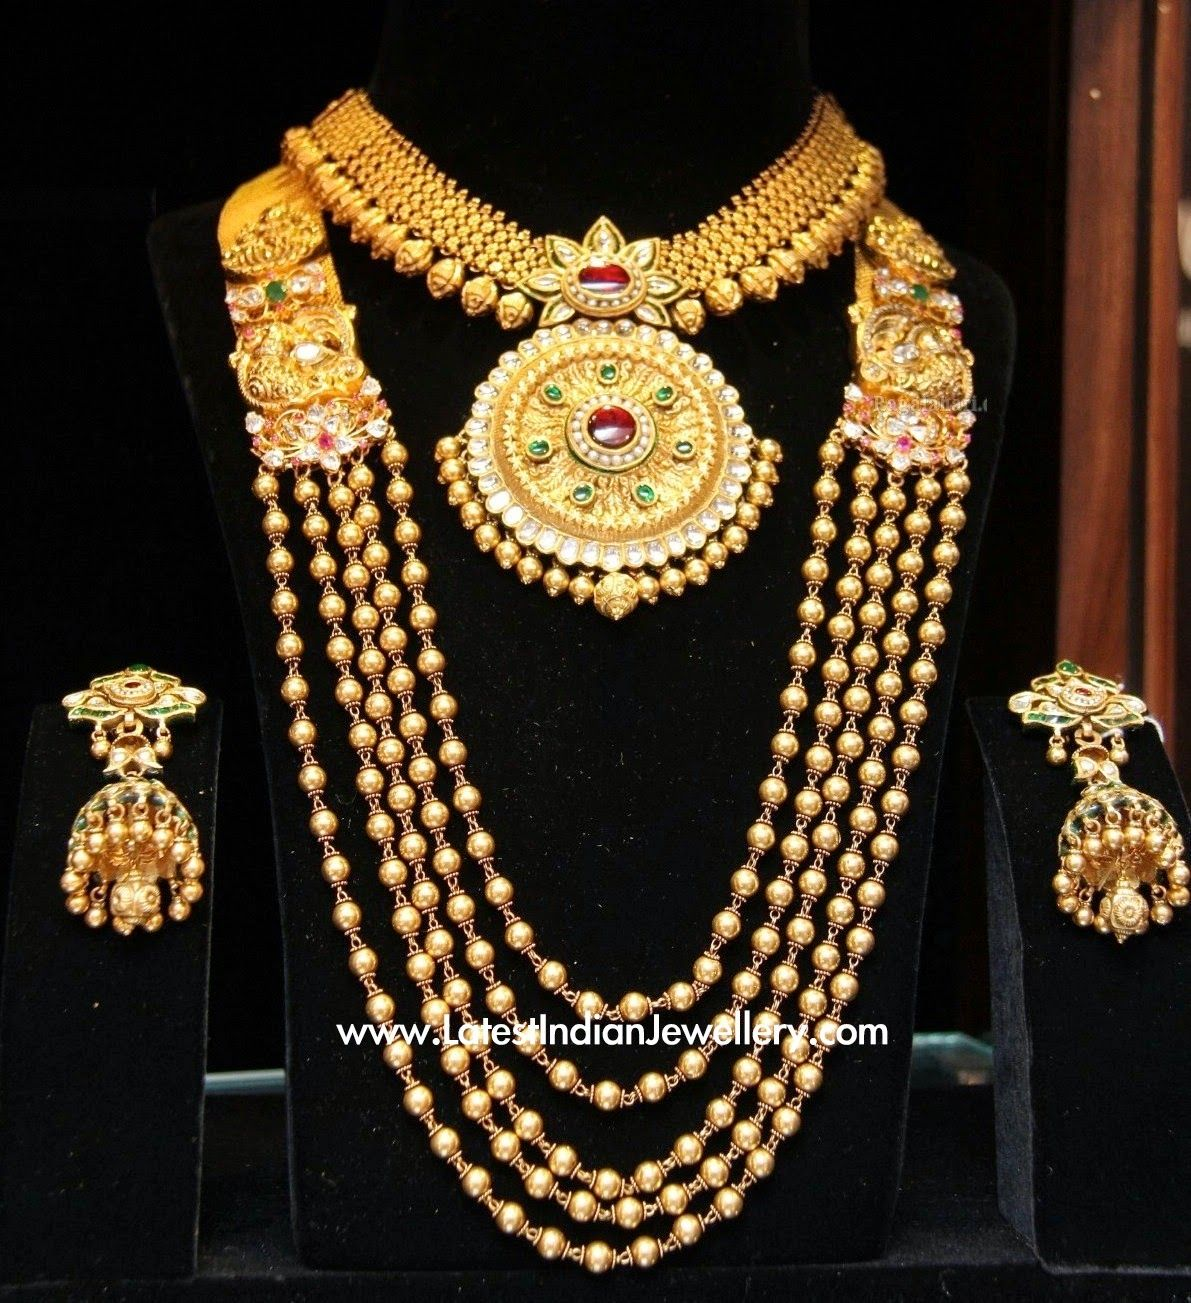 Gold rani haar pictures to pin on pinterest - Latest Gold Necklace Haram Set